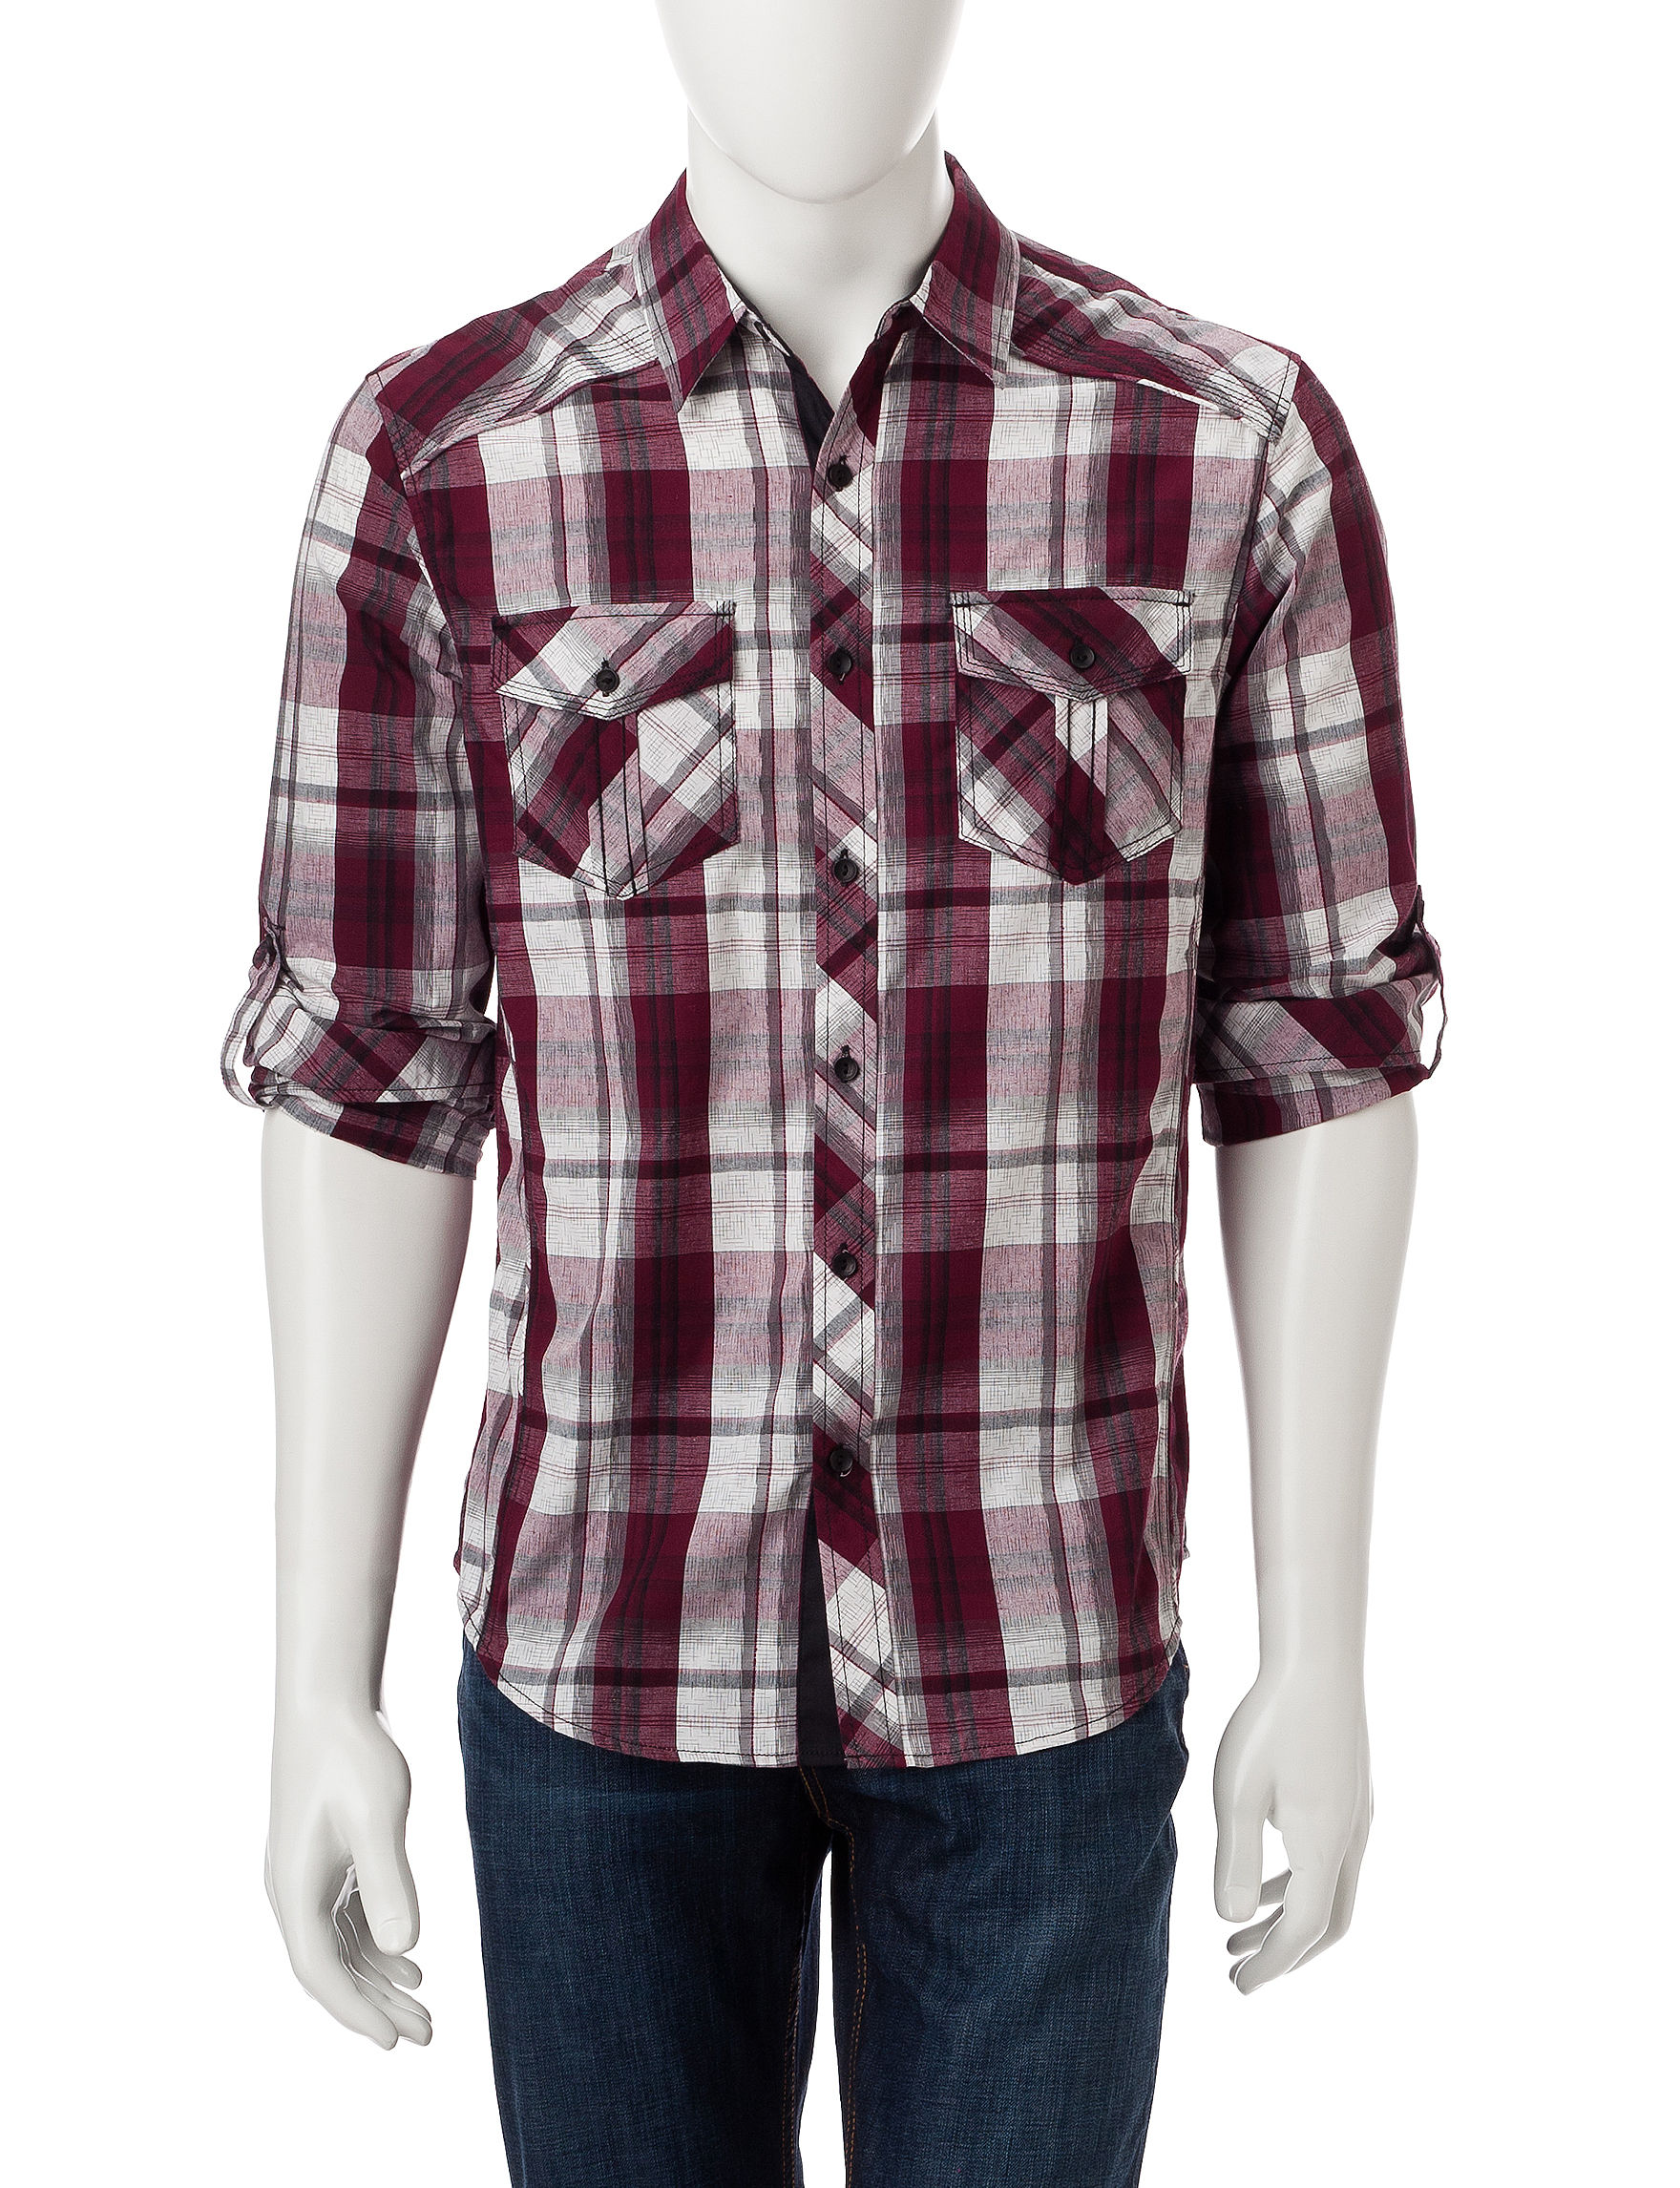 Rustic Blue Burgundy Casual Button Down Shirts